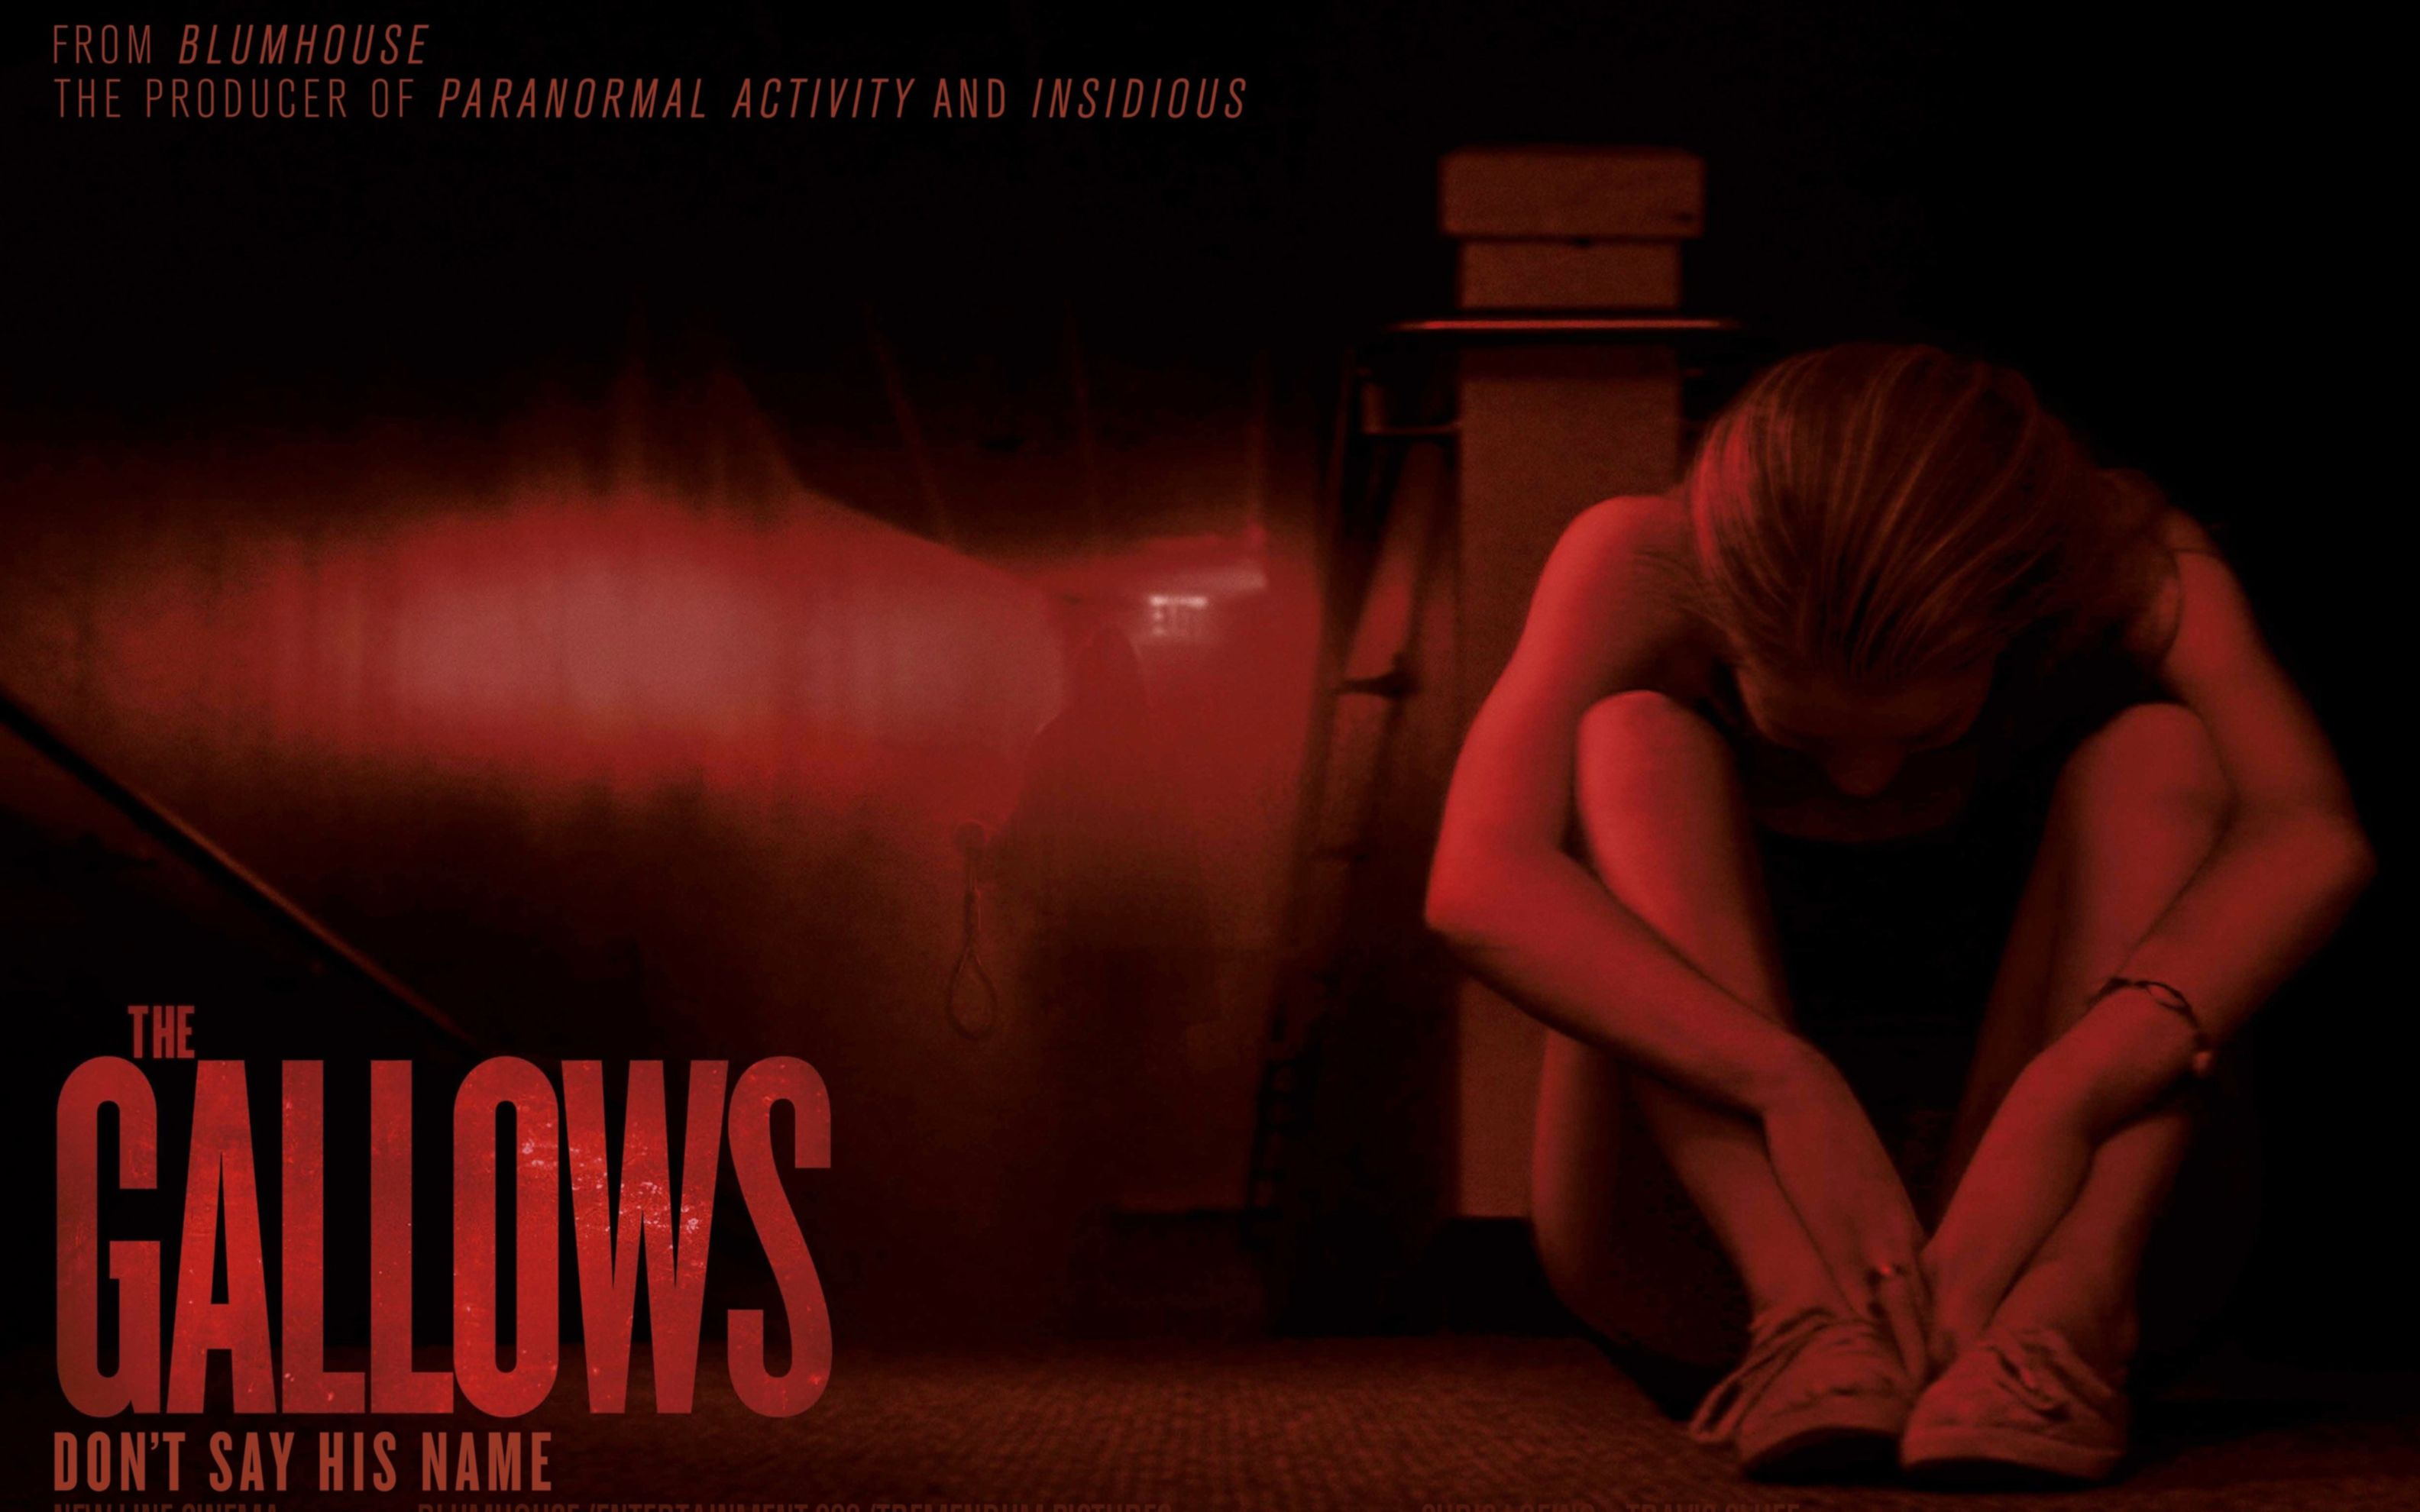 Download free HD The Gallows Horror Movie Wide Wallpaper, image